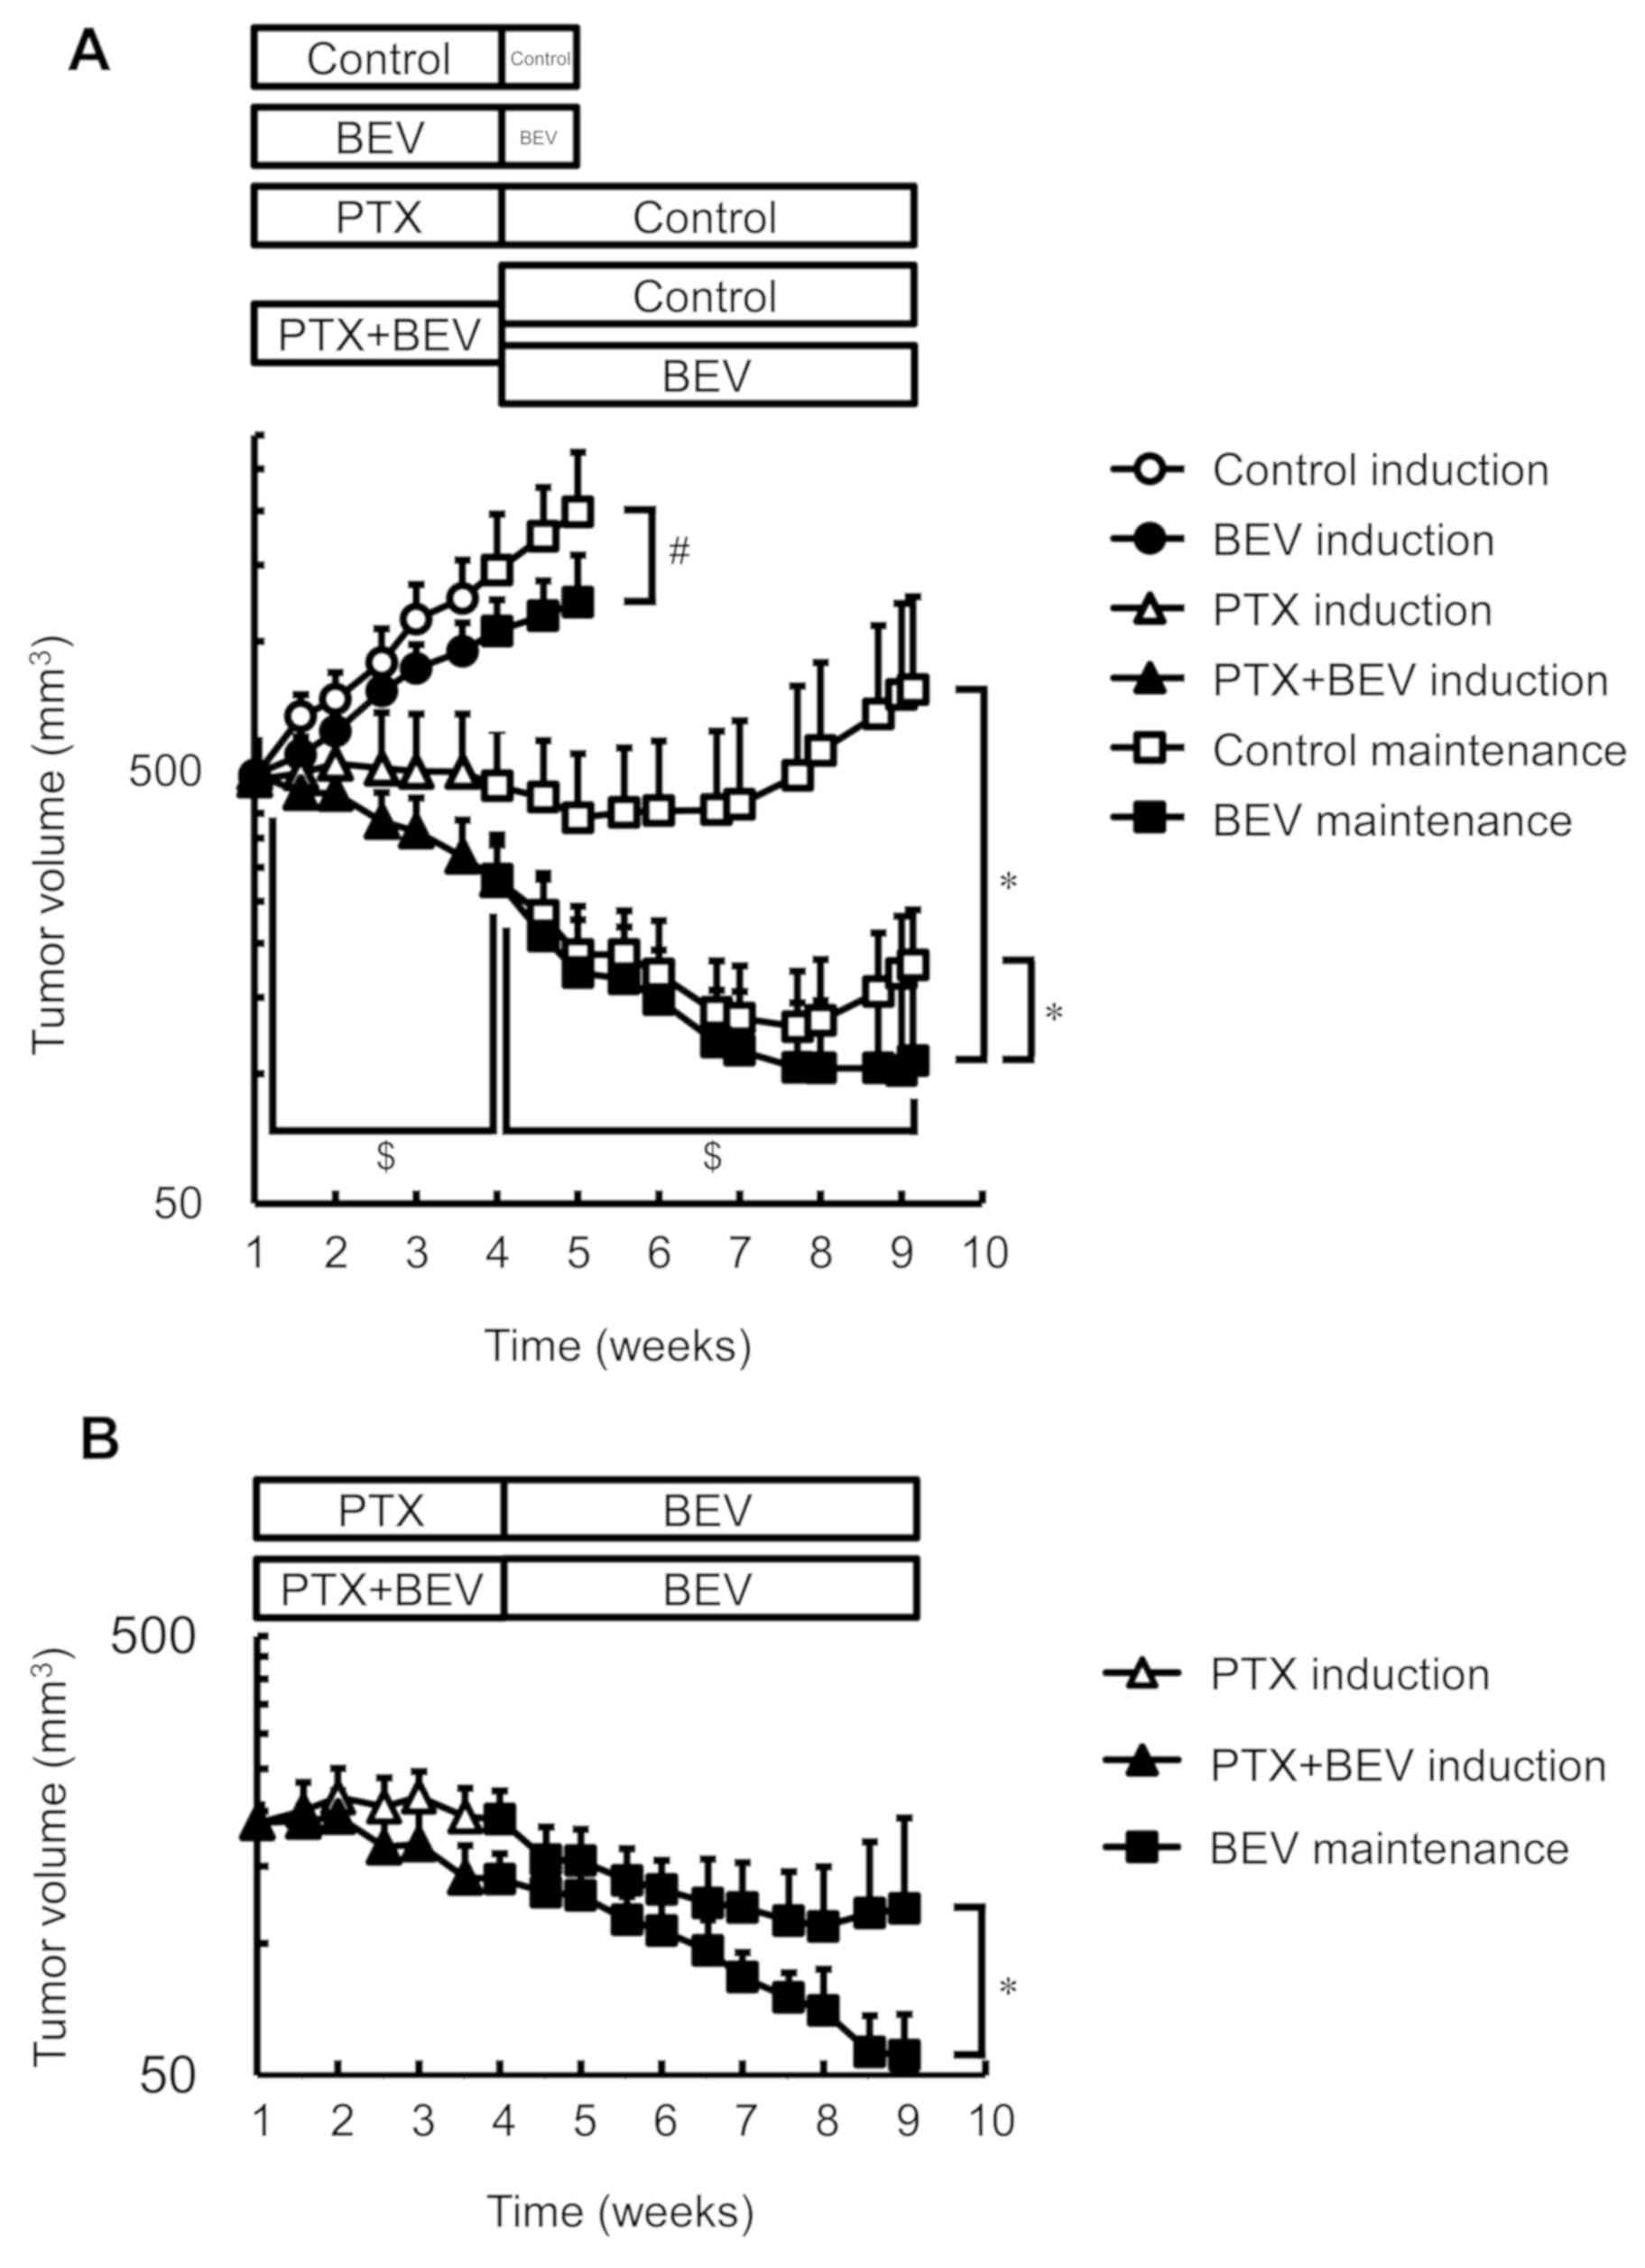 Sustained Effect Of Continuous Treatment With Bevacizumab Following Bevacizumab In Combination With Chemotherapy In A Human Ovarian Clear Cell Carcinoma Xenograft Model